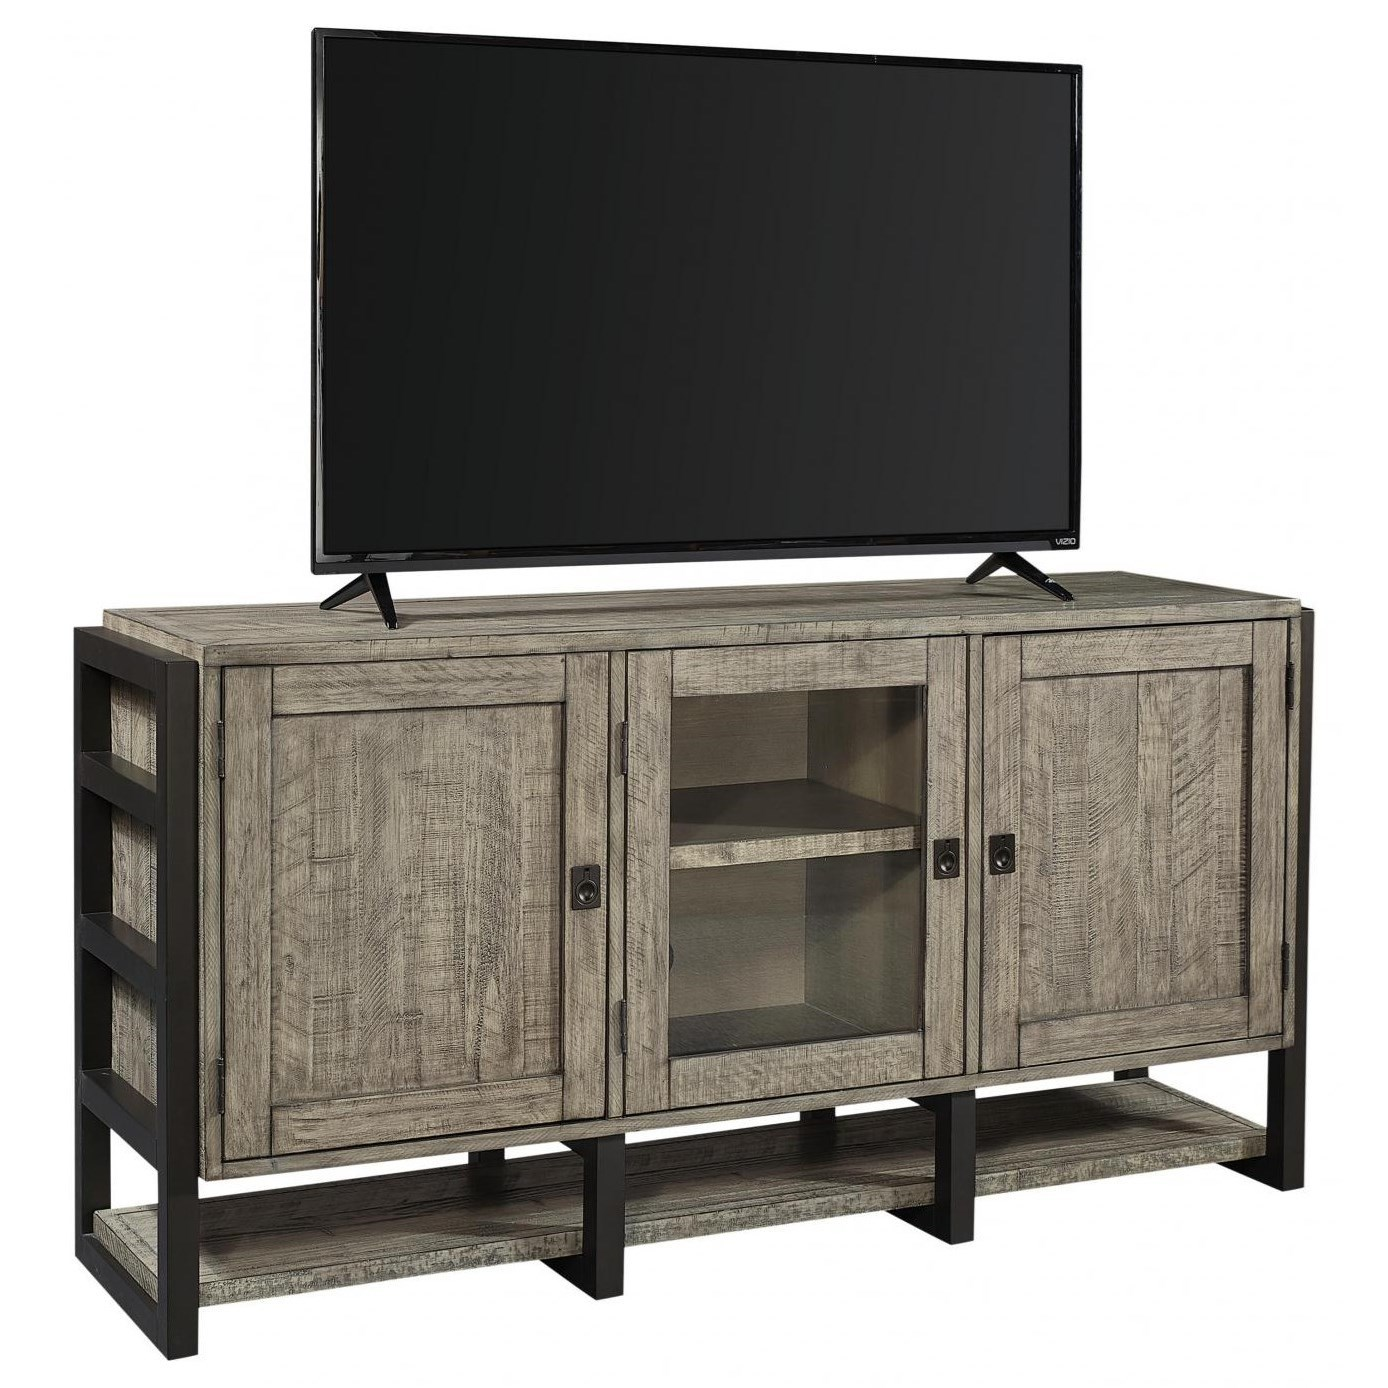 "Grayson 65"" Console by Aspenhome at Baer's Furniture"